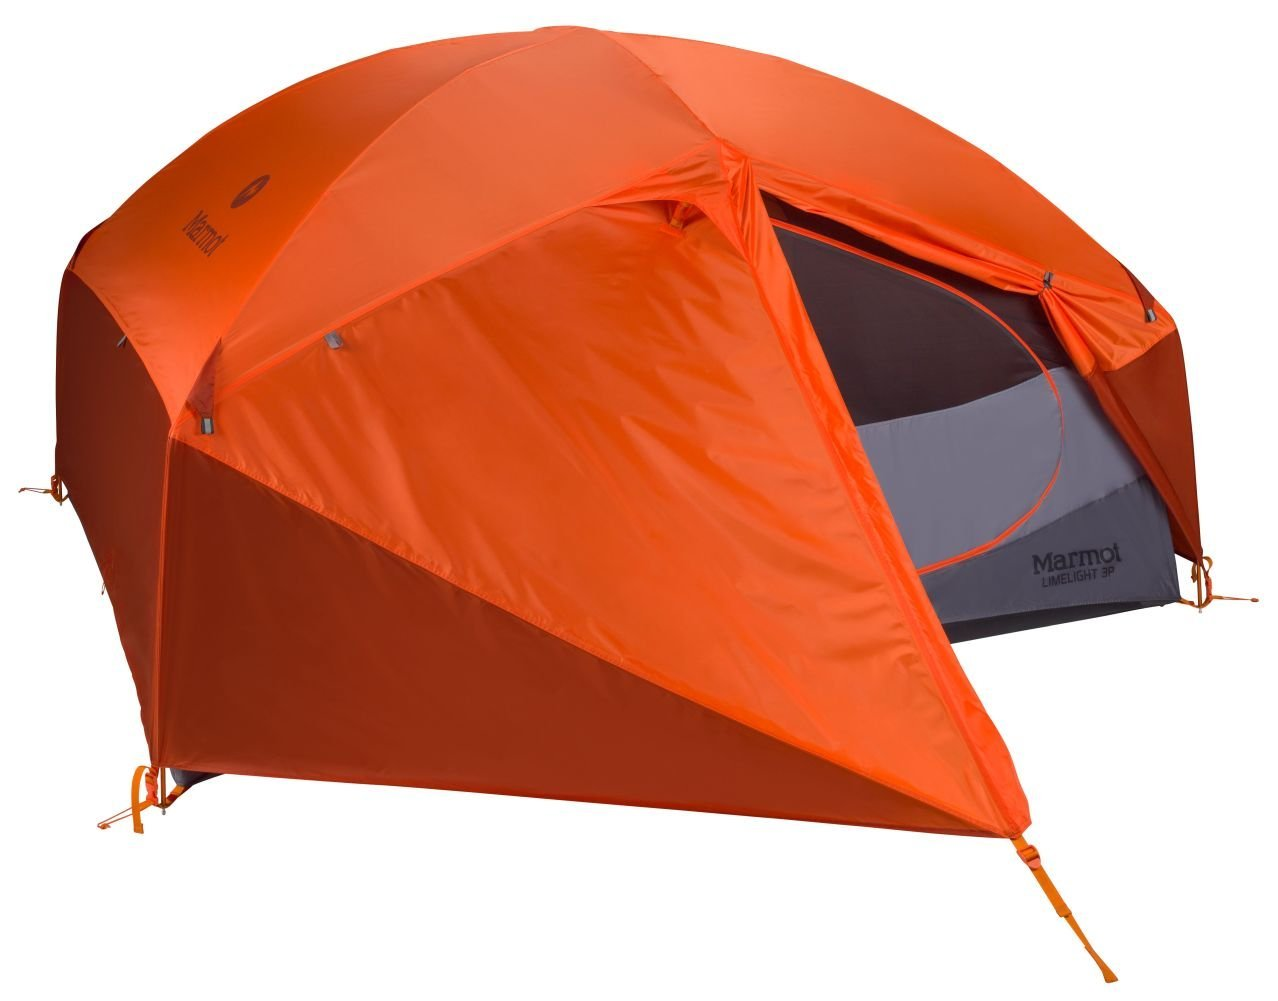 Marmot Limelight 3 Person Camping Tent w/Footprint